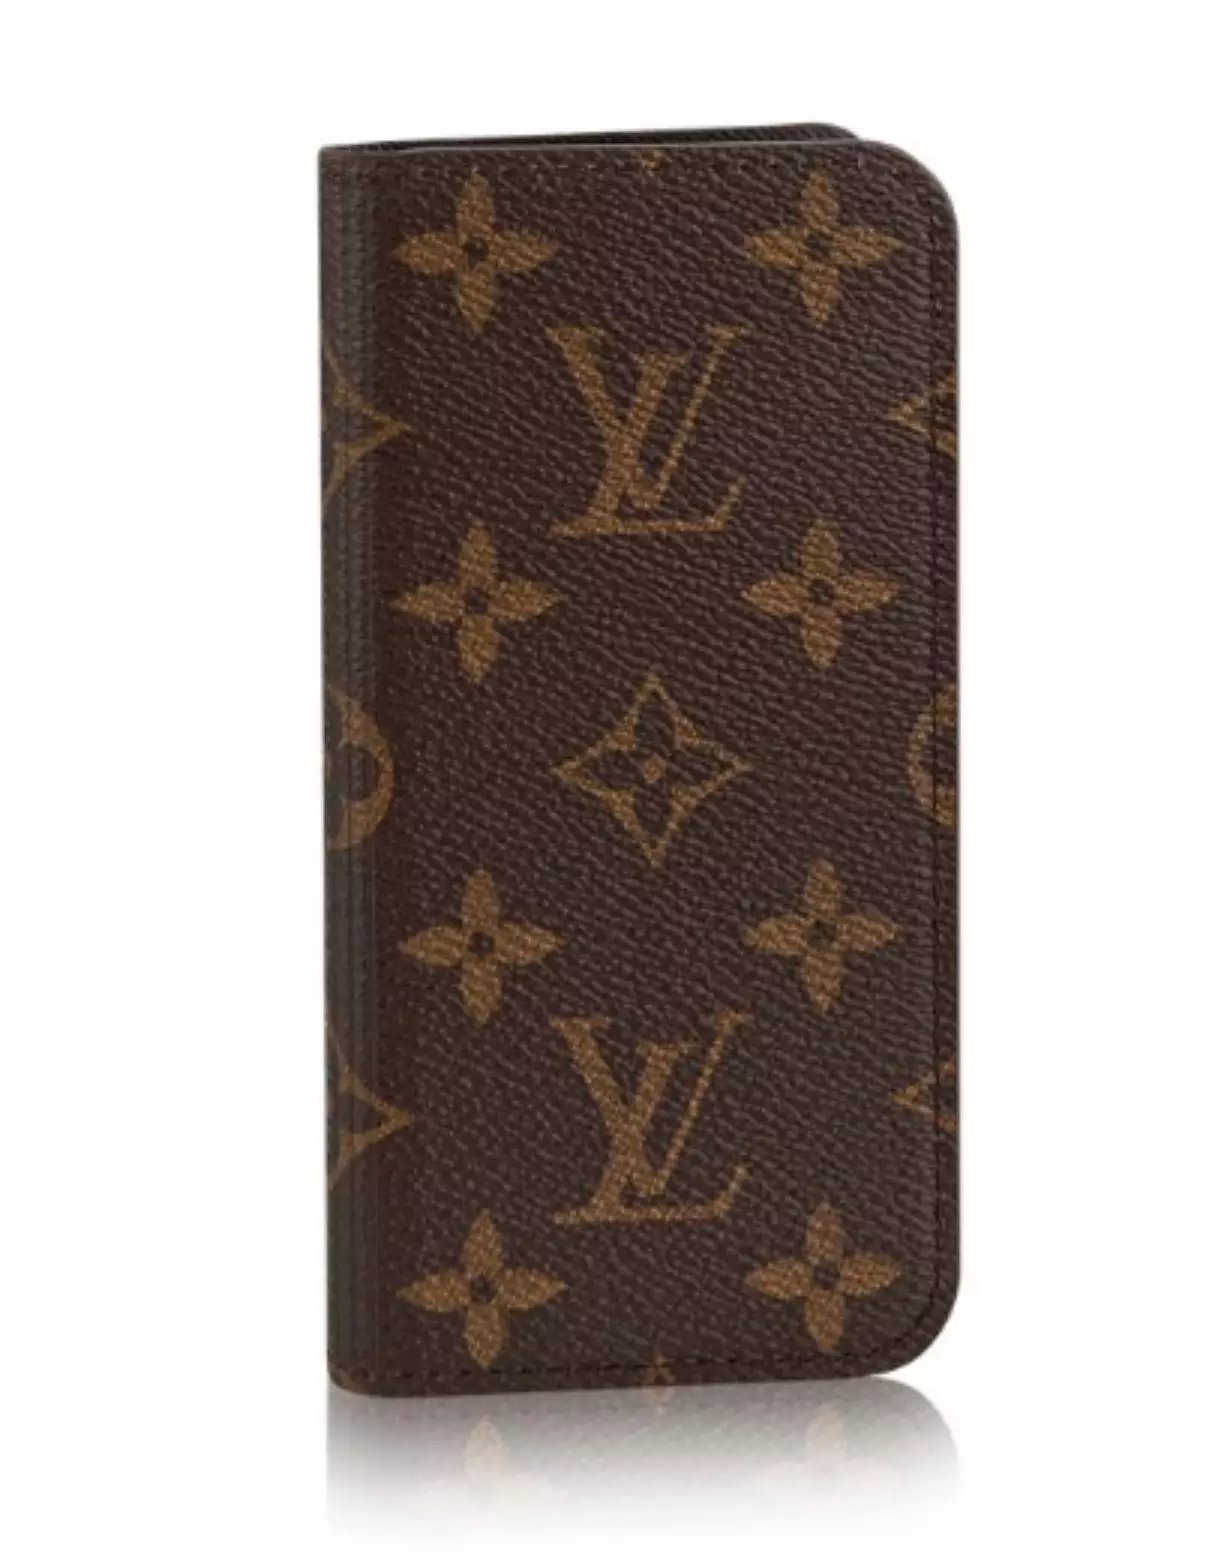 iphone 8 protective case buy iphone 8 cases online Louis Vuitton iphone 8 case custom iphone 8 cases cheap phone cases 6 top cell phone case manufacturers case for i phone juice pack iphone 8 cases for